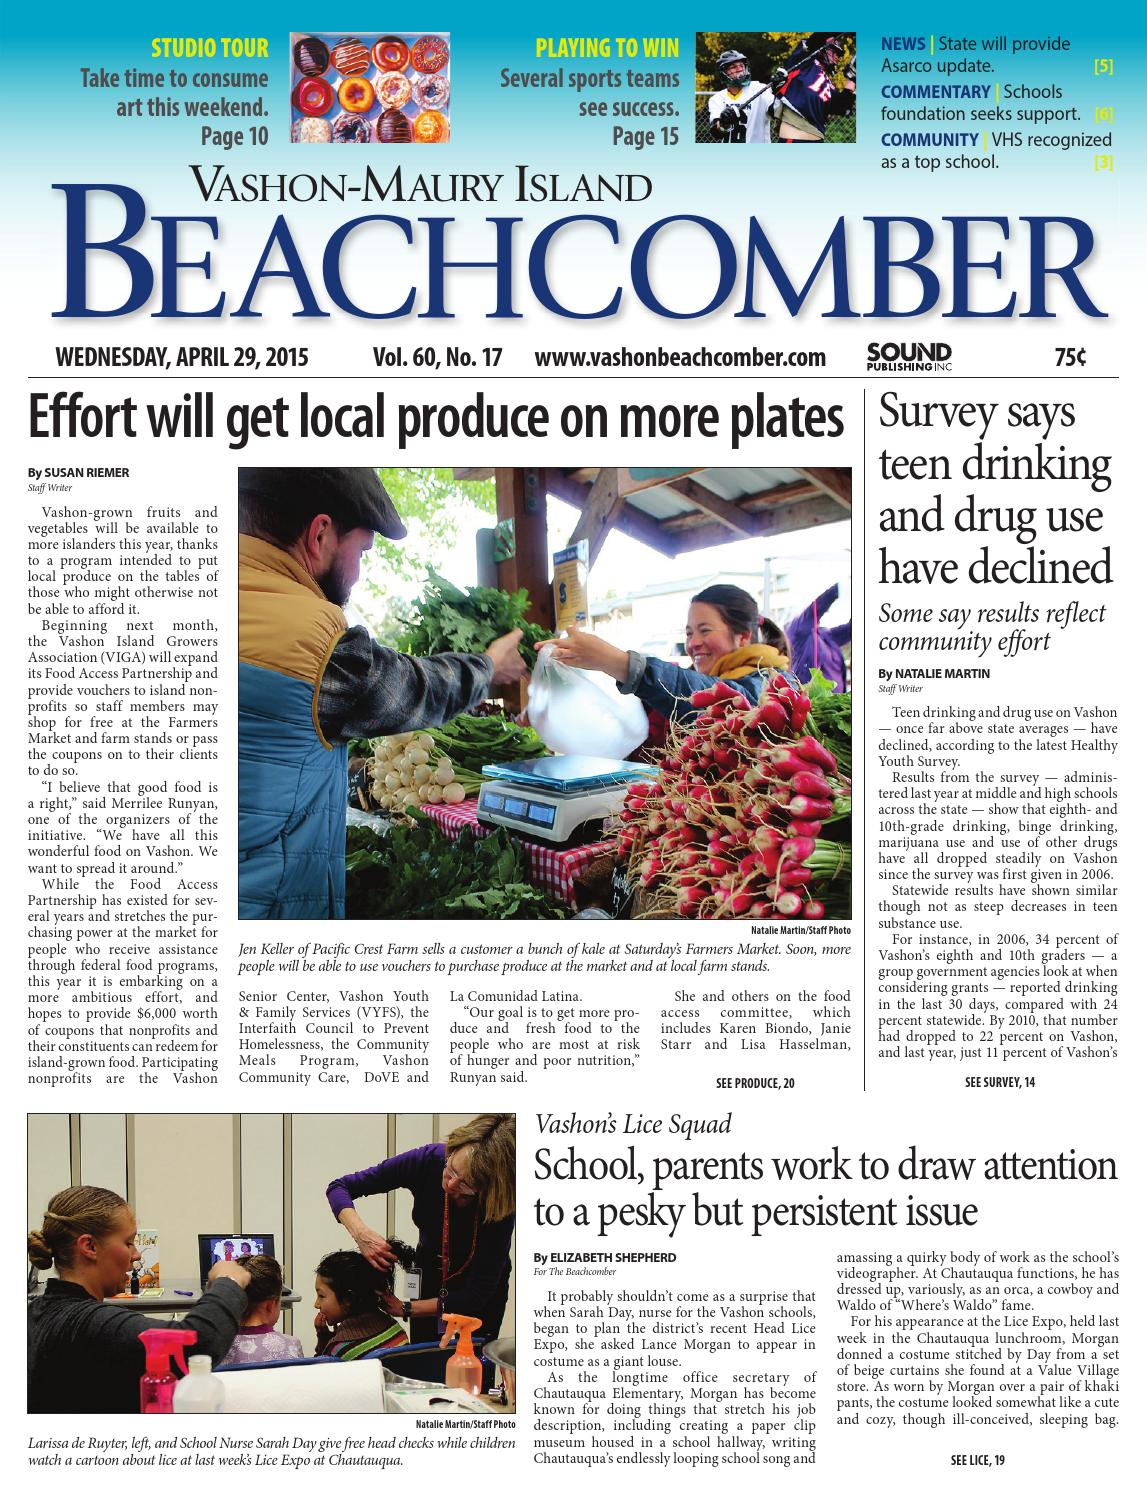 Vashon maury island beachcomber april 29 2015 by sound publishing vashon maury island beachcomber april 29 2015 by sound publishing issuu nvjuhfo Choice Image